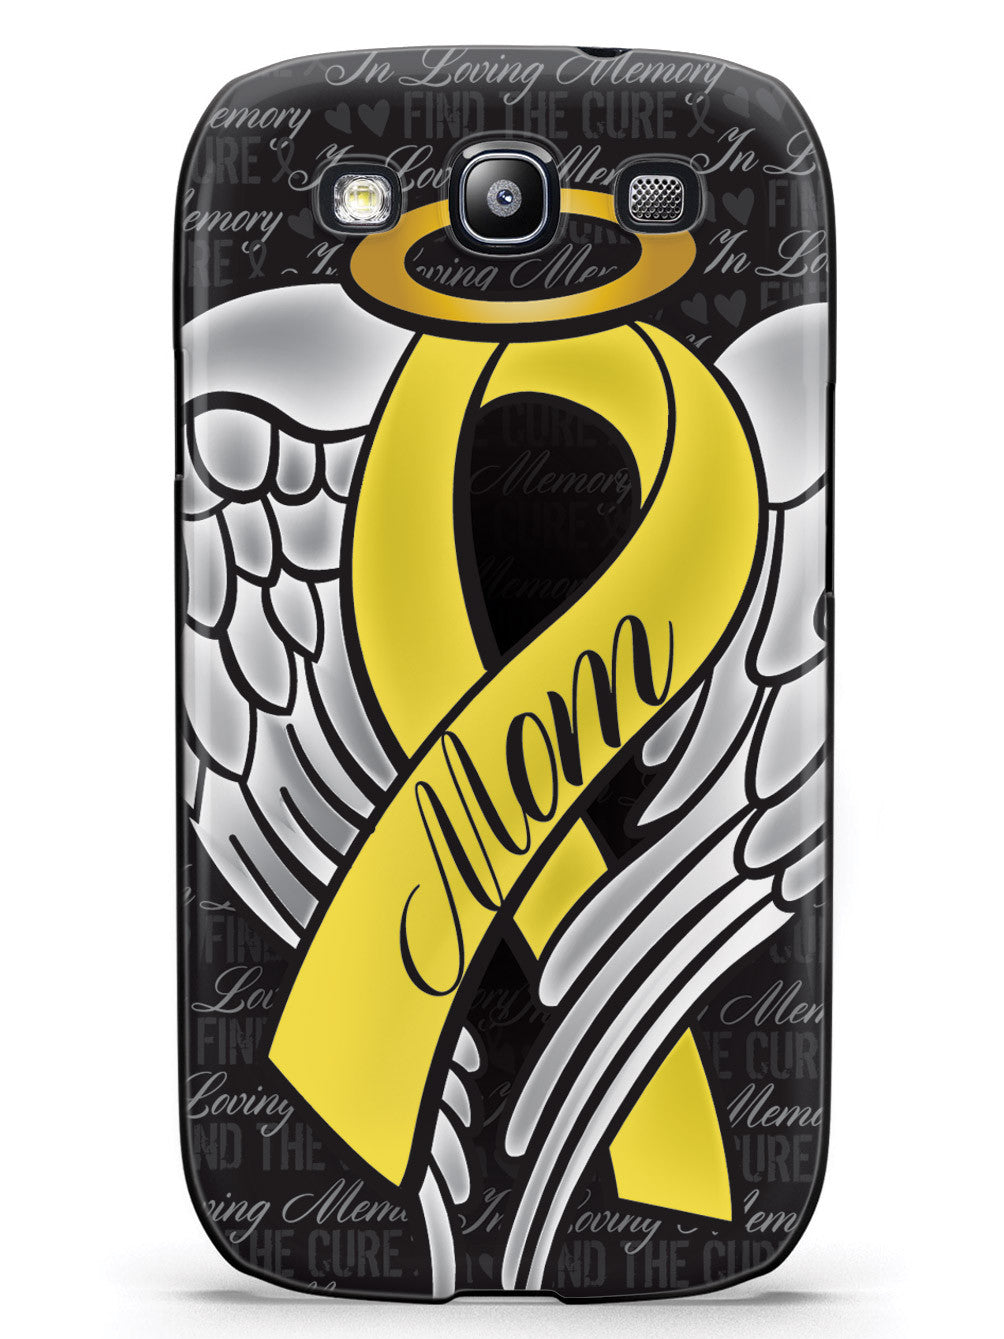 In Loving Memory of My Mom - Yellow Ribbon Case